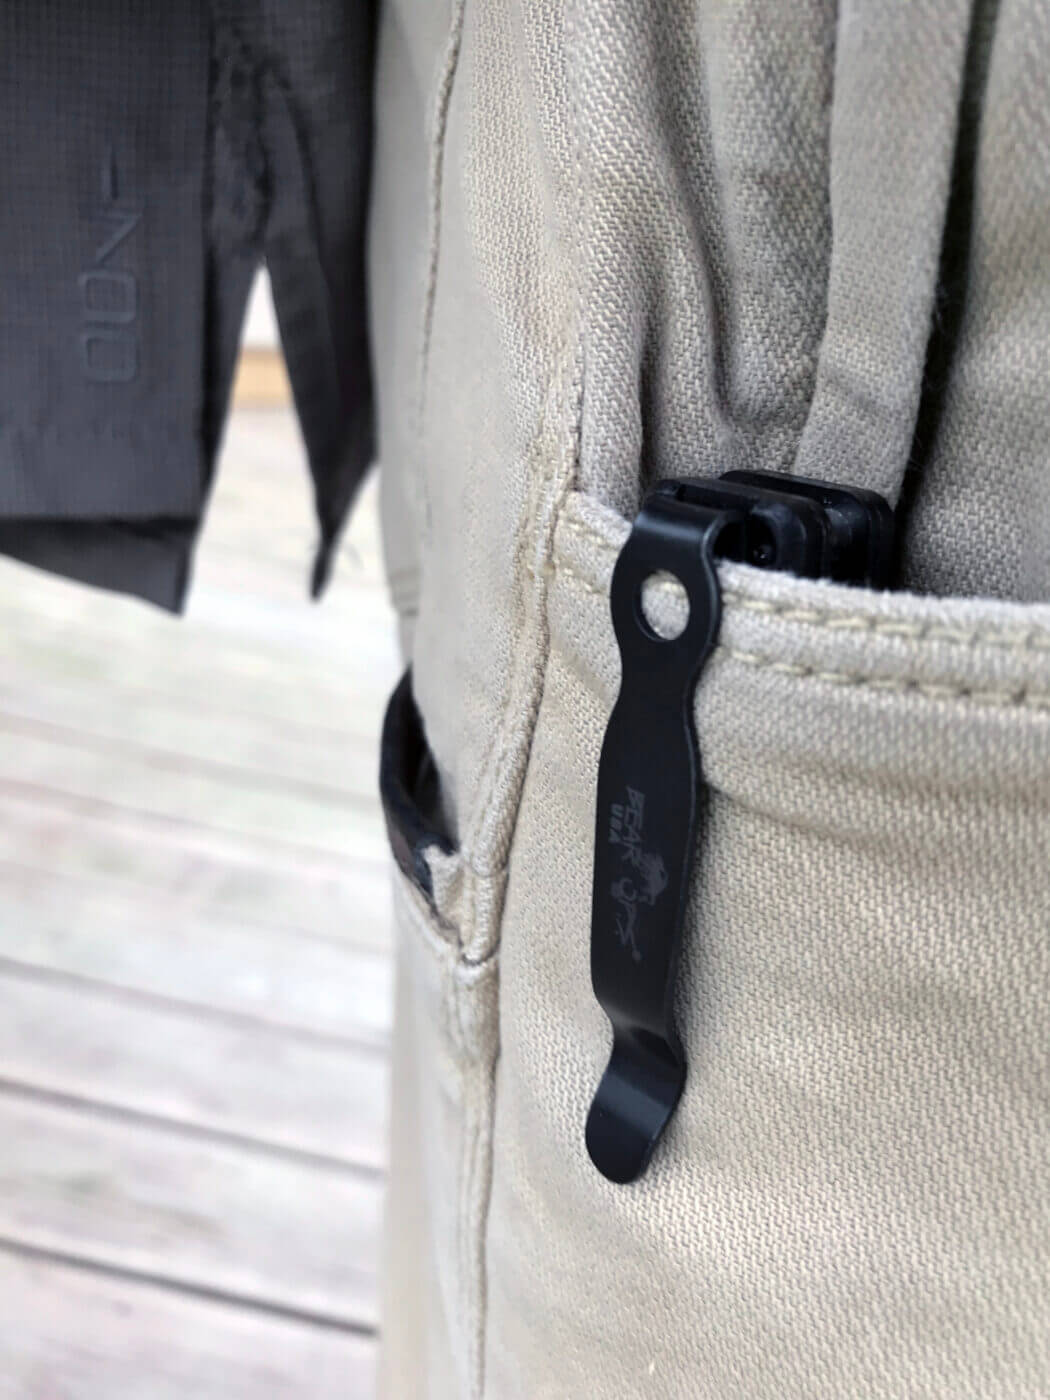 Carrying a pocket knife with a clip